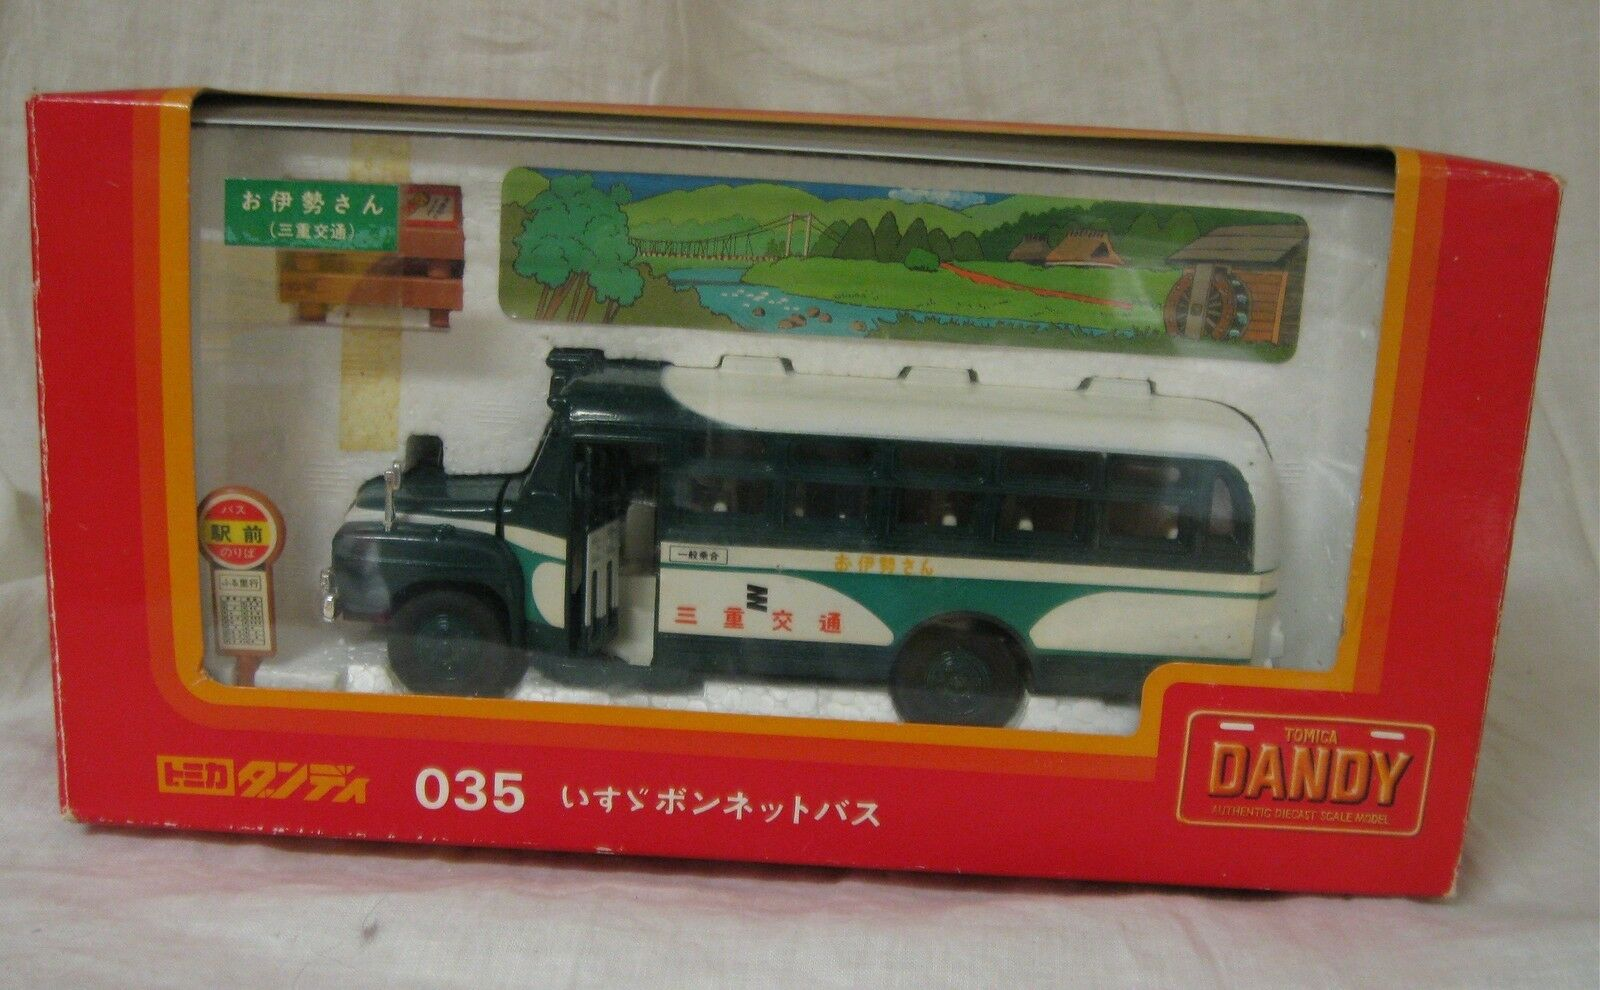 Tomica Dandy  035 Isuzu Bonnet verde & bianca Tour Bus, 1/43 Scale, Mint in Box